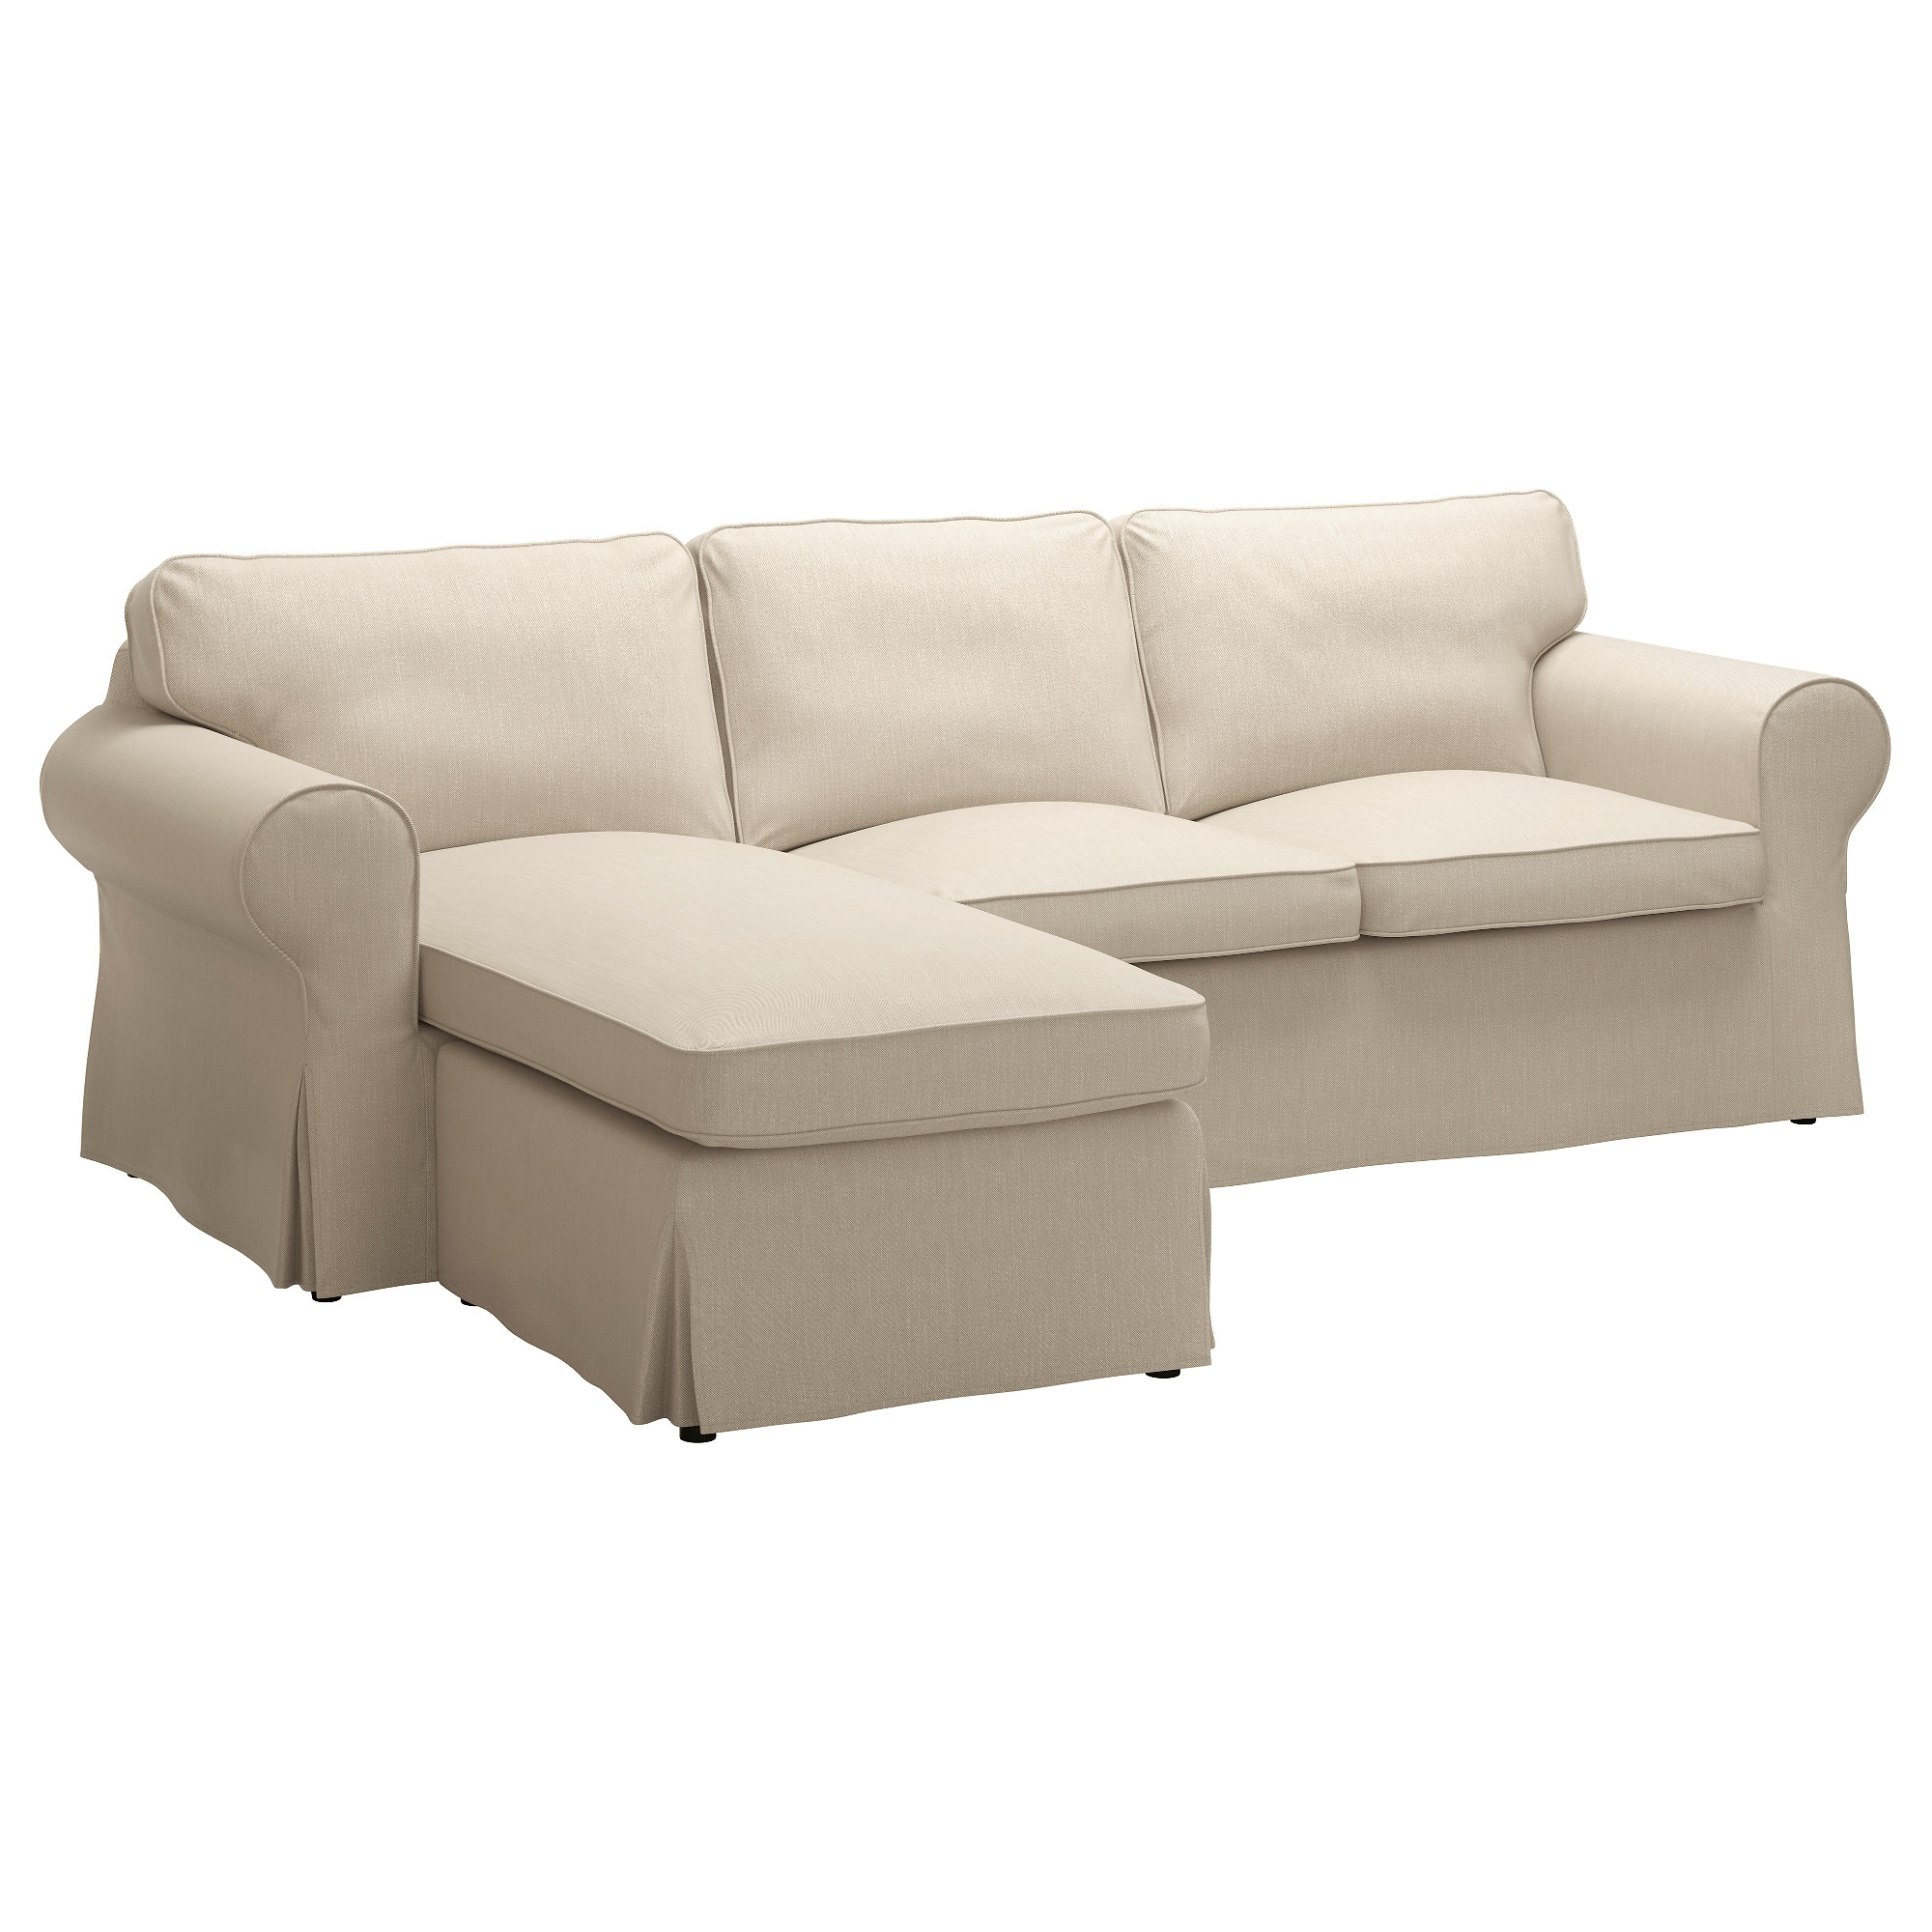 Most Up To Date Ektorp Sofa – With Chaise/nordvalla Light Blue – Ikea Throughout Couches With Chaise Lounge (View 6 of 15)